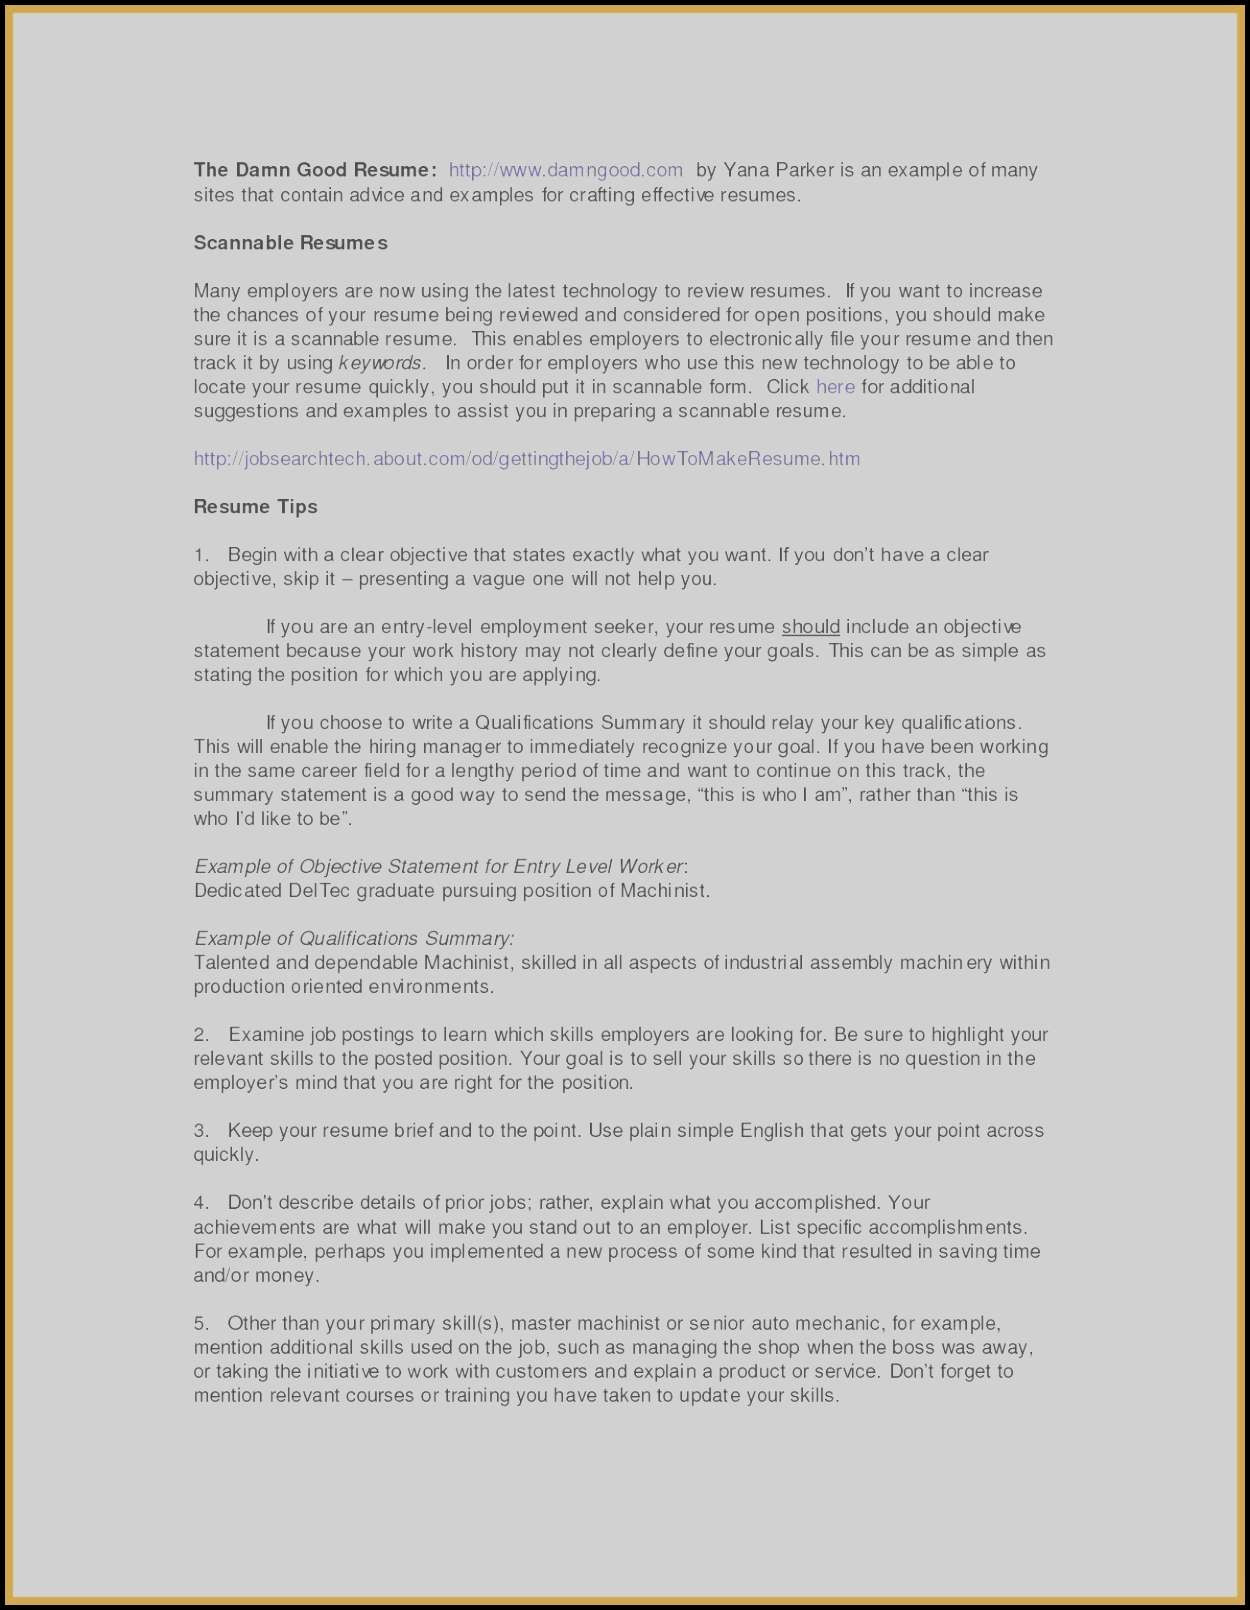 Marissa Mayer Resume Template Download - Download Marissa Mayer Resume Best Resume Template